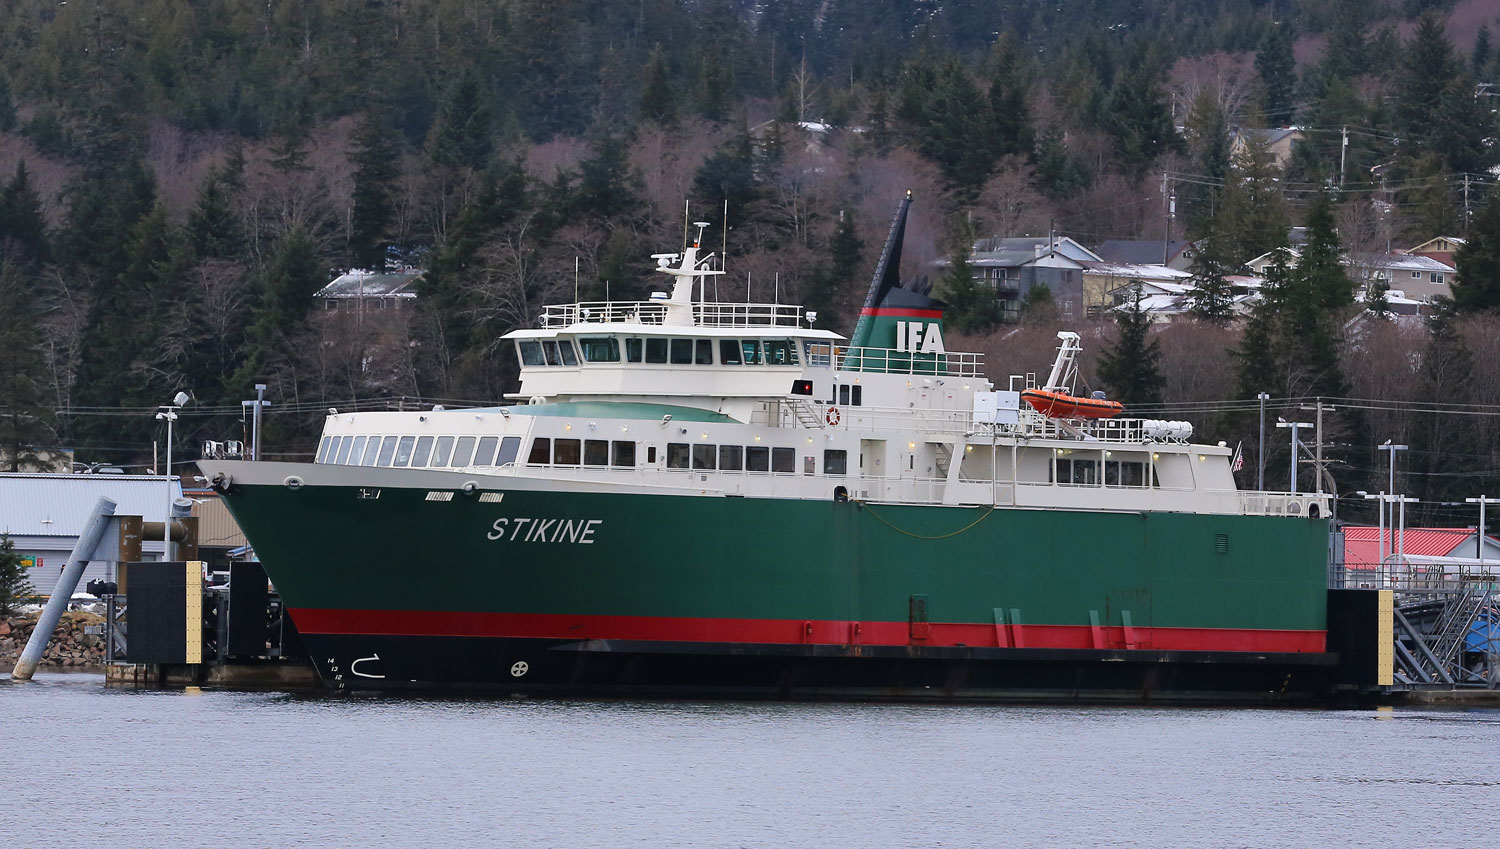 The Interisland Ferry Authority M/V Stikine getting ready to depart for Hollis on Prince of Wales Island.